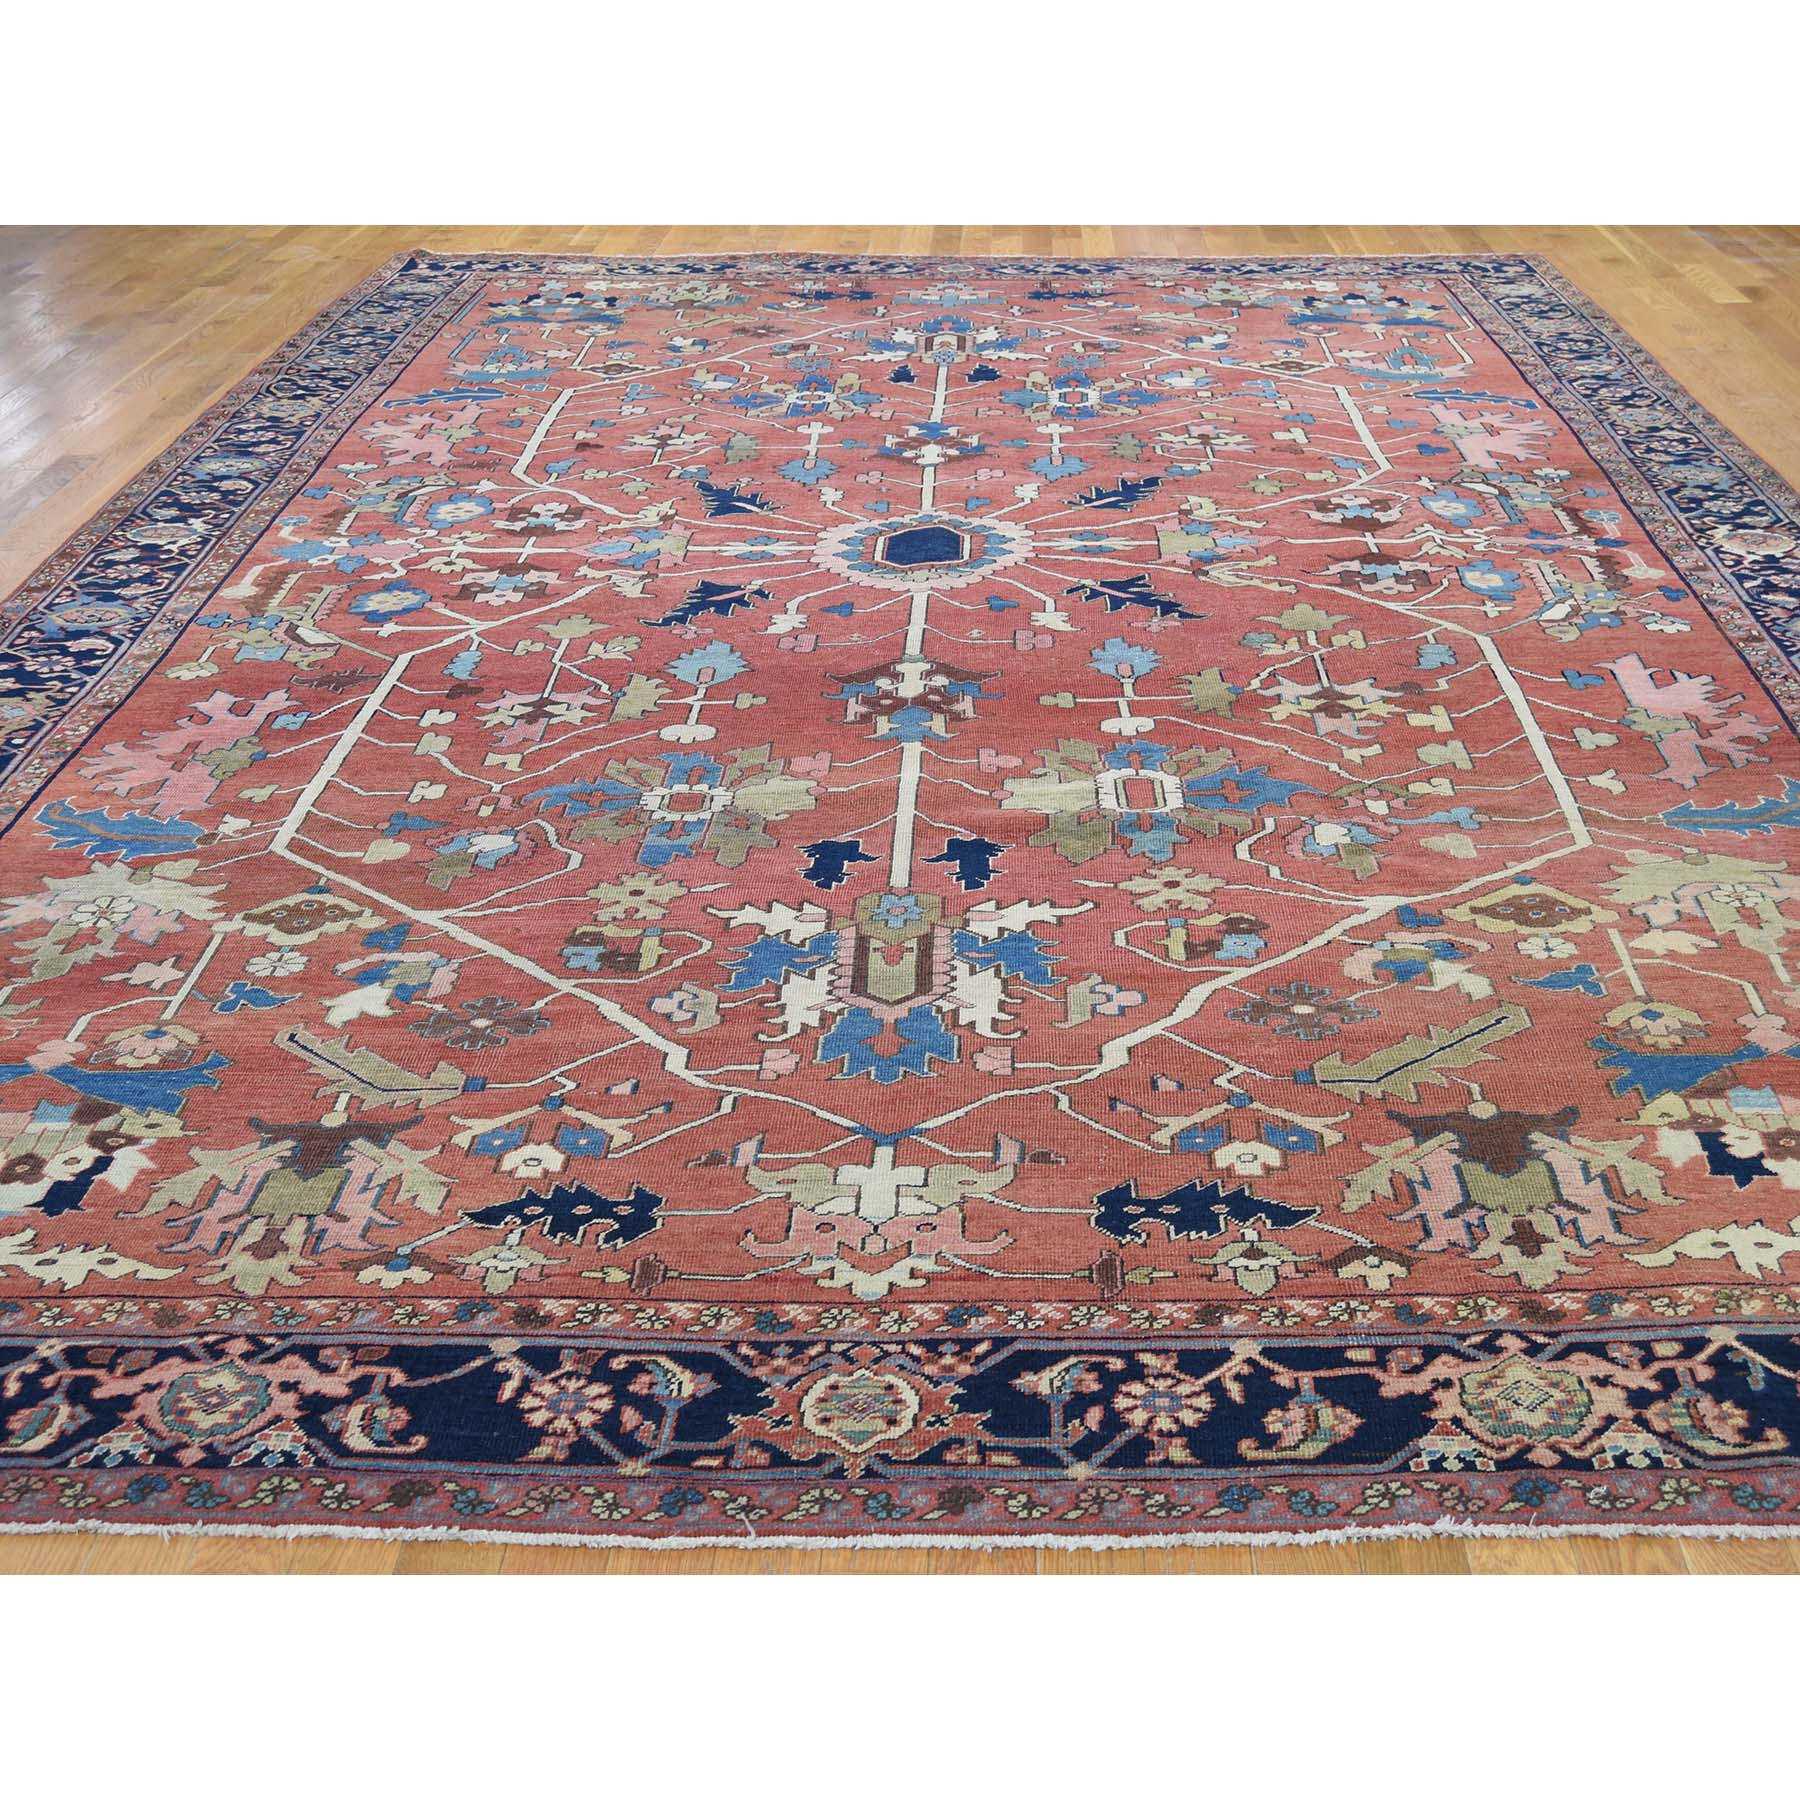 10-x14-6  Antique Persian Serapi Exc Cond Pure Wool Hand Knotted Oriental Rug